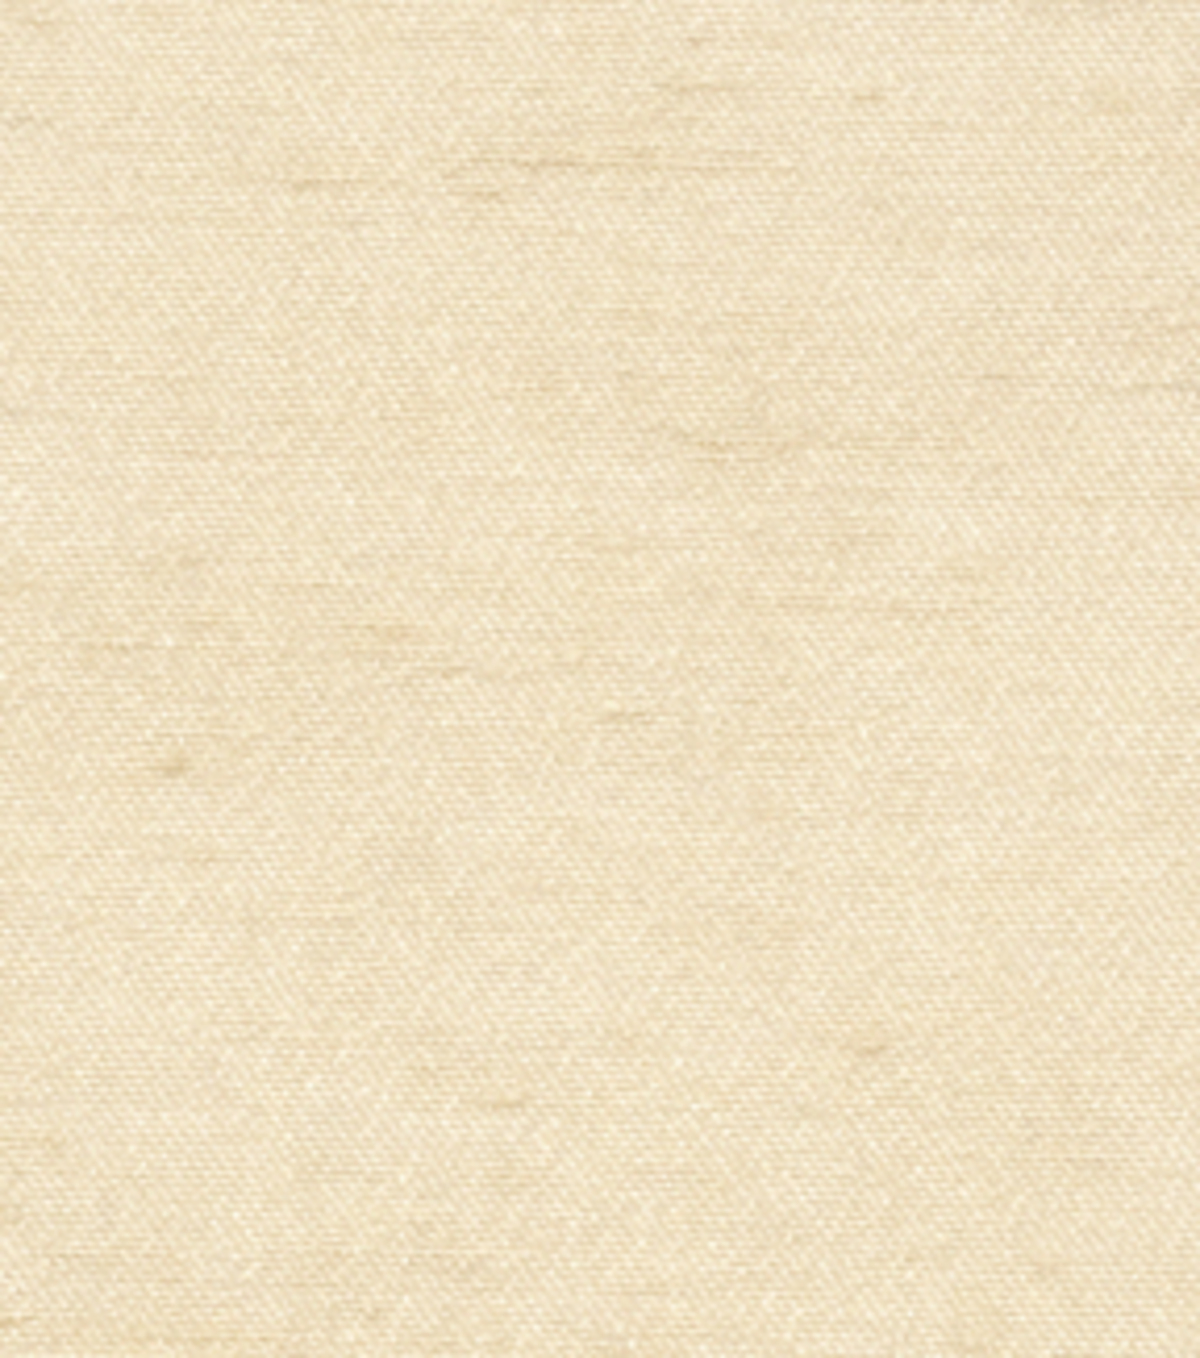 Home Decor 8\u0022x8\u0022 Fabric Swatch-Signature Series Antique Satin Sahara